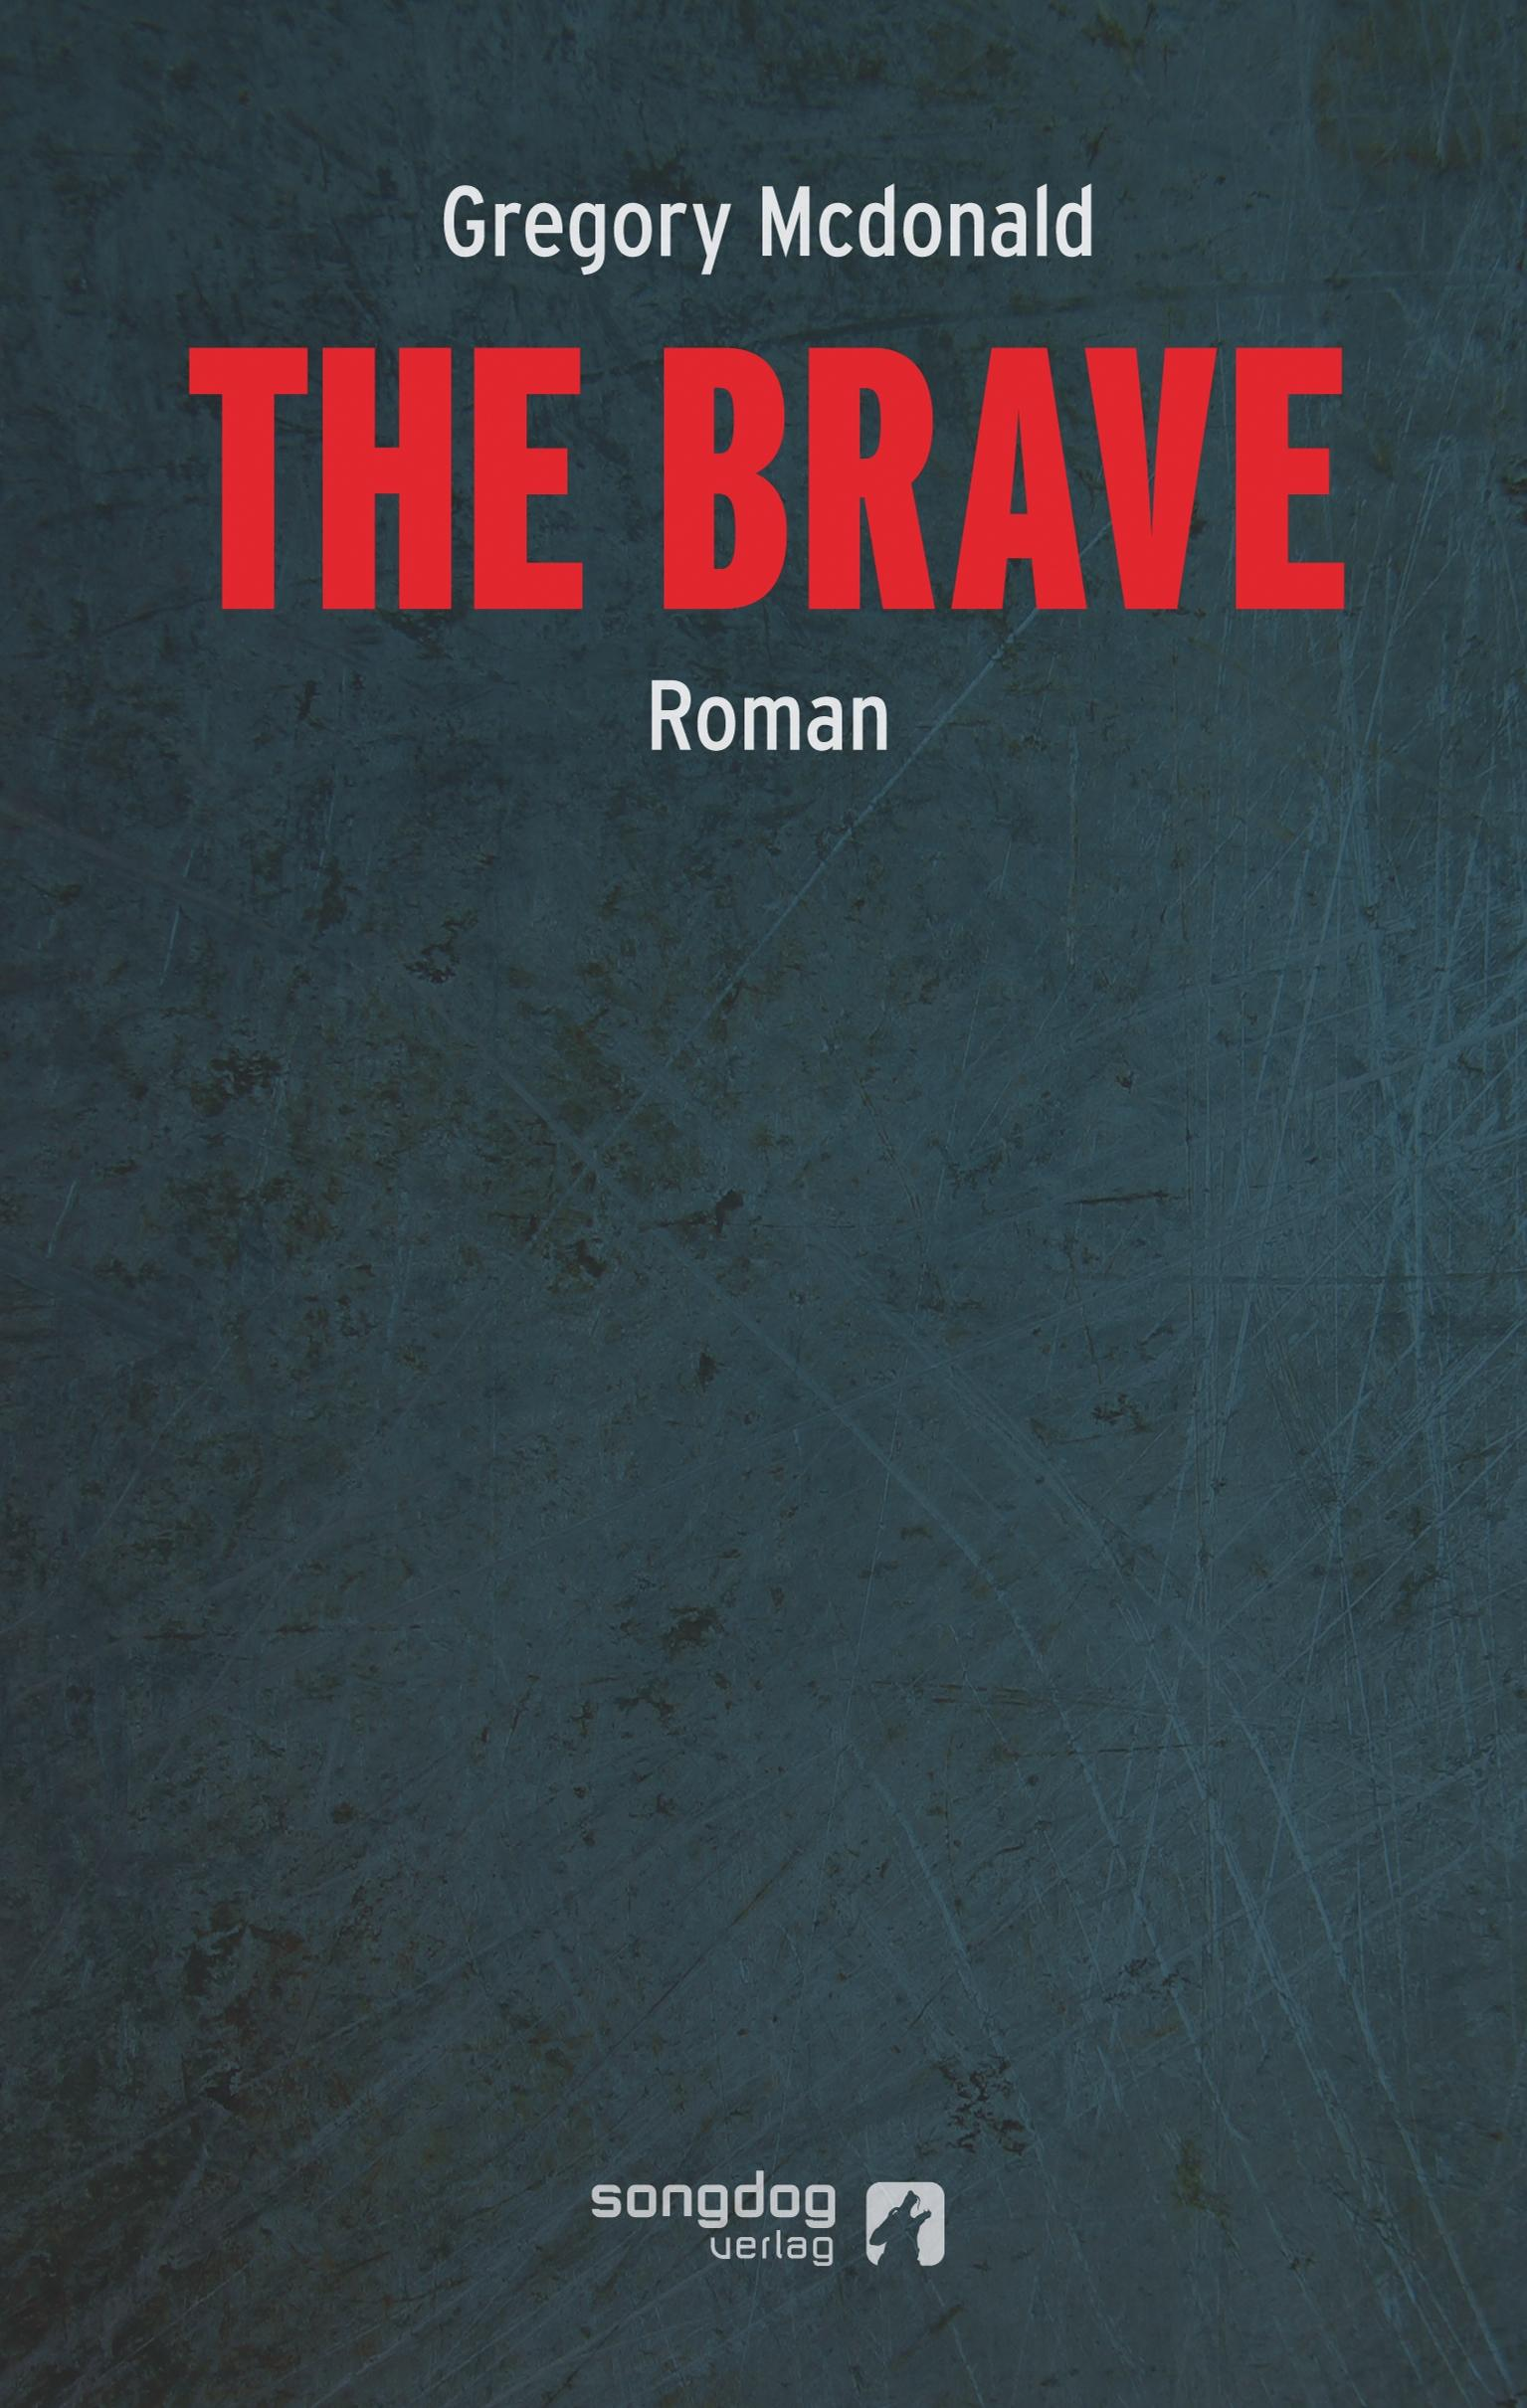 The-Brave-Gregory-Mcdonald